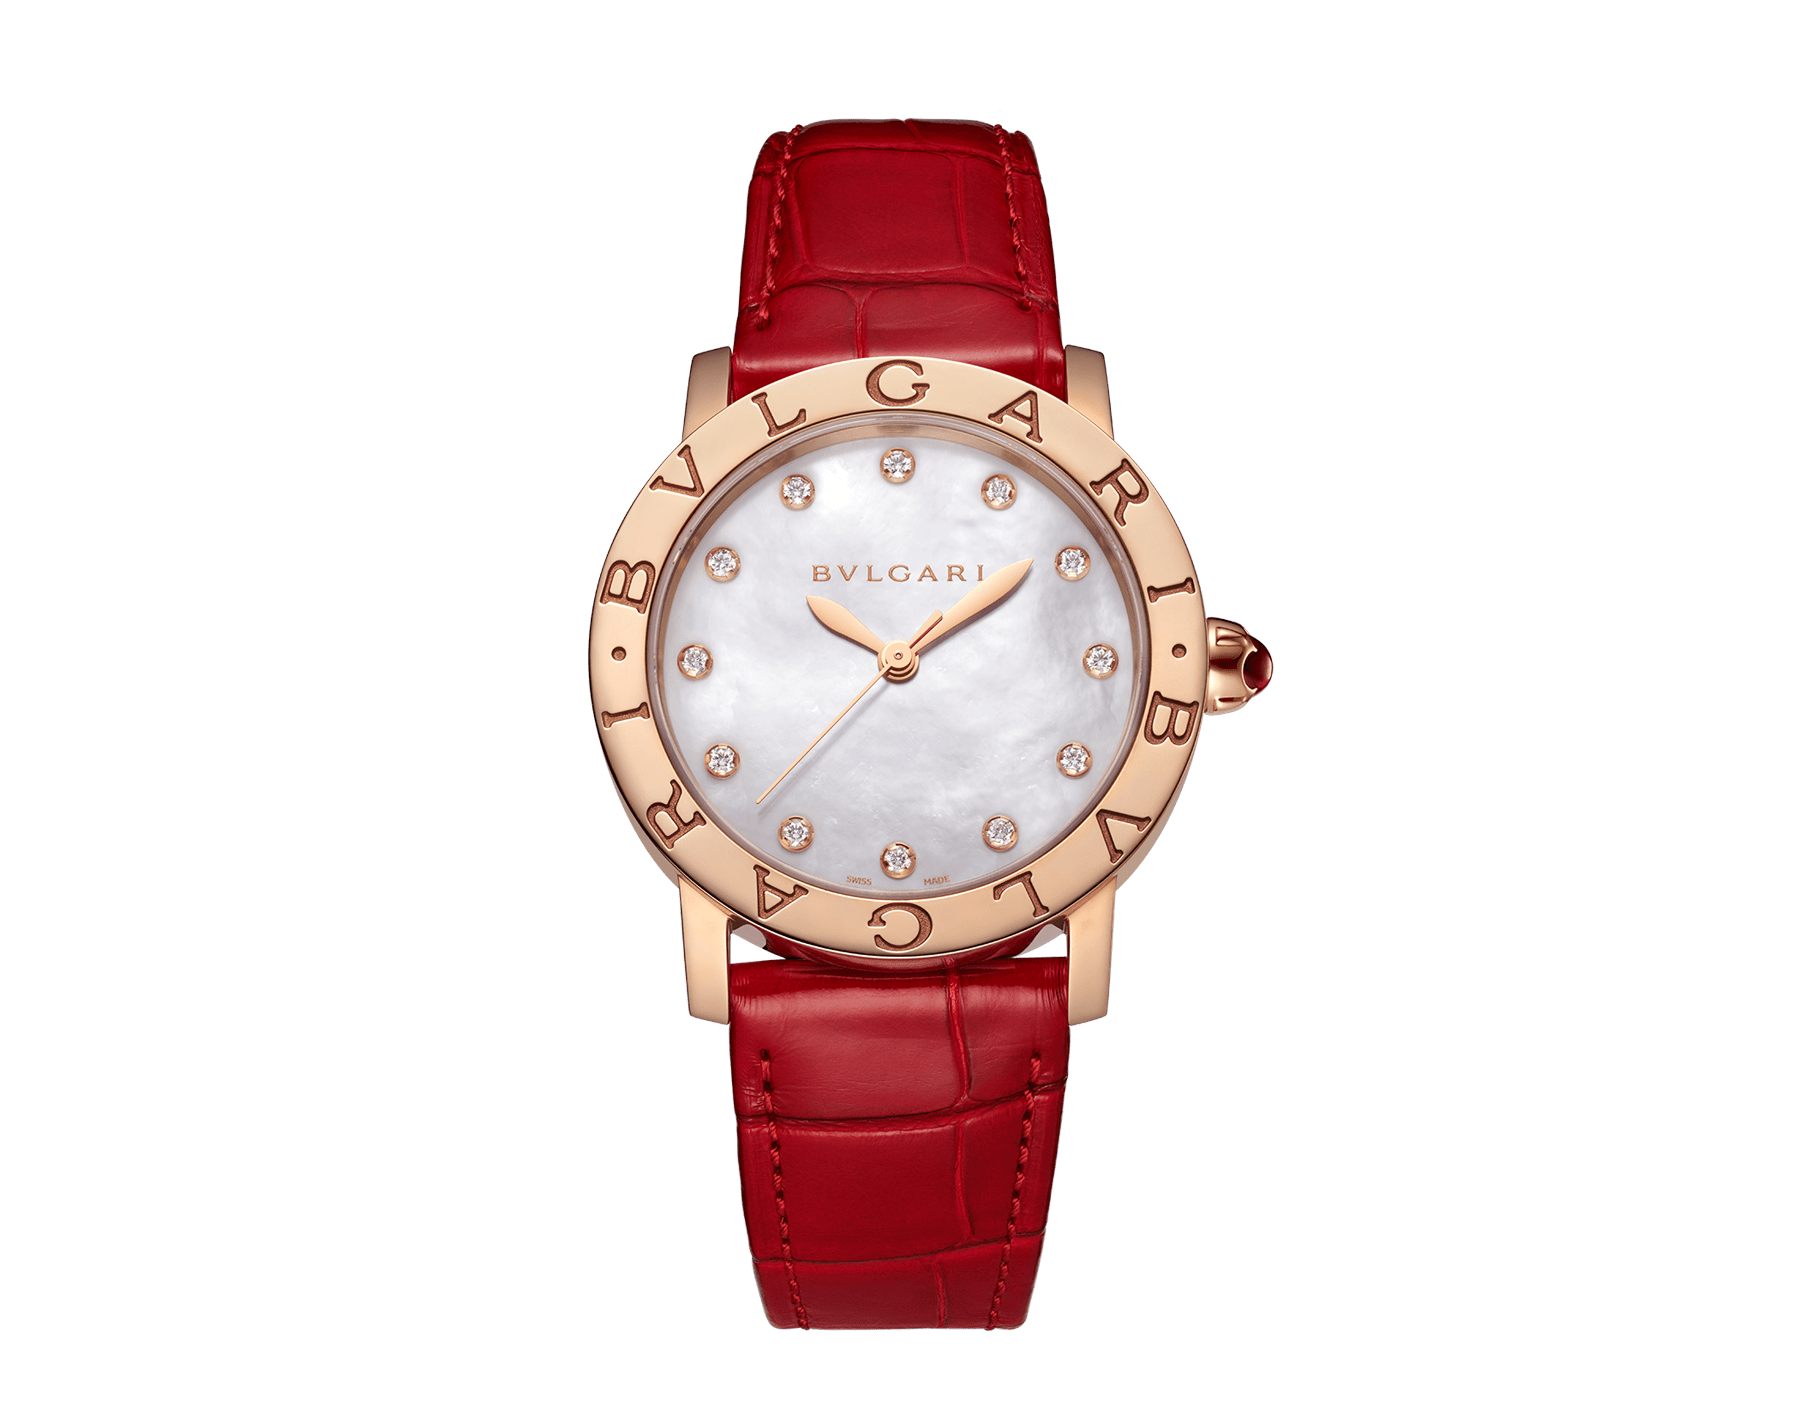 BVLGARI BVLGARI watch with 18 kt rose gold case, white mother-of-pearl dial, diamond indexes and shiny red alligator bracelet 102750 image 1